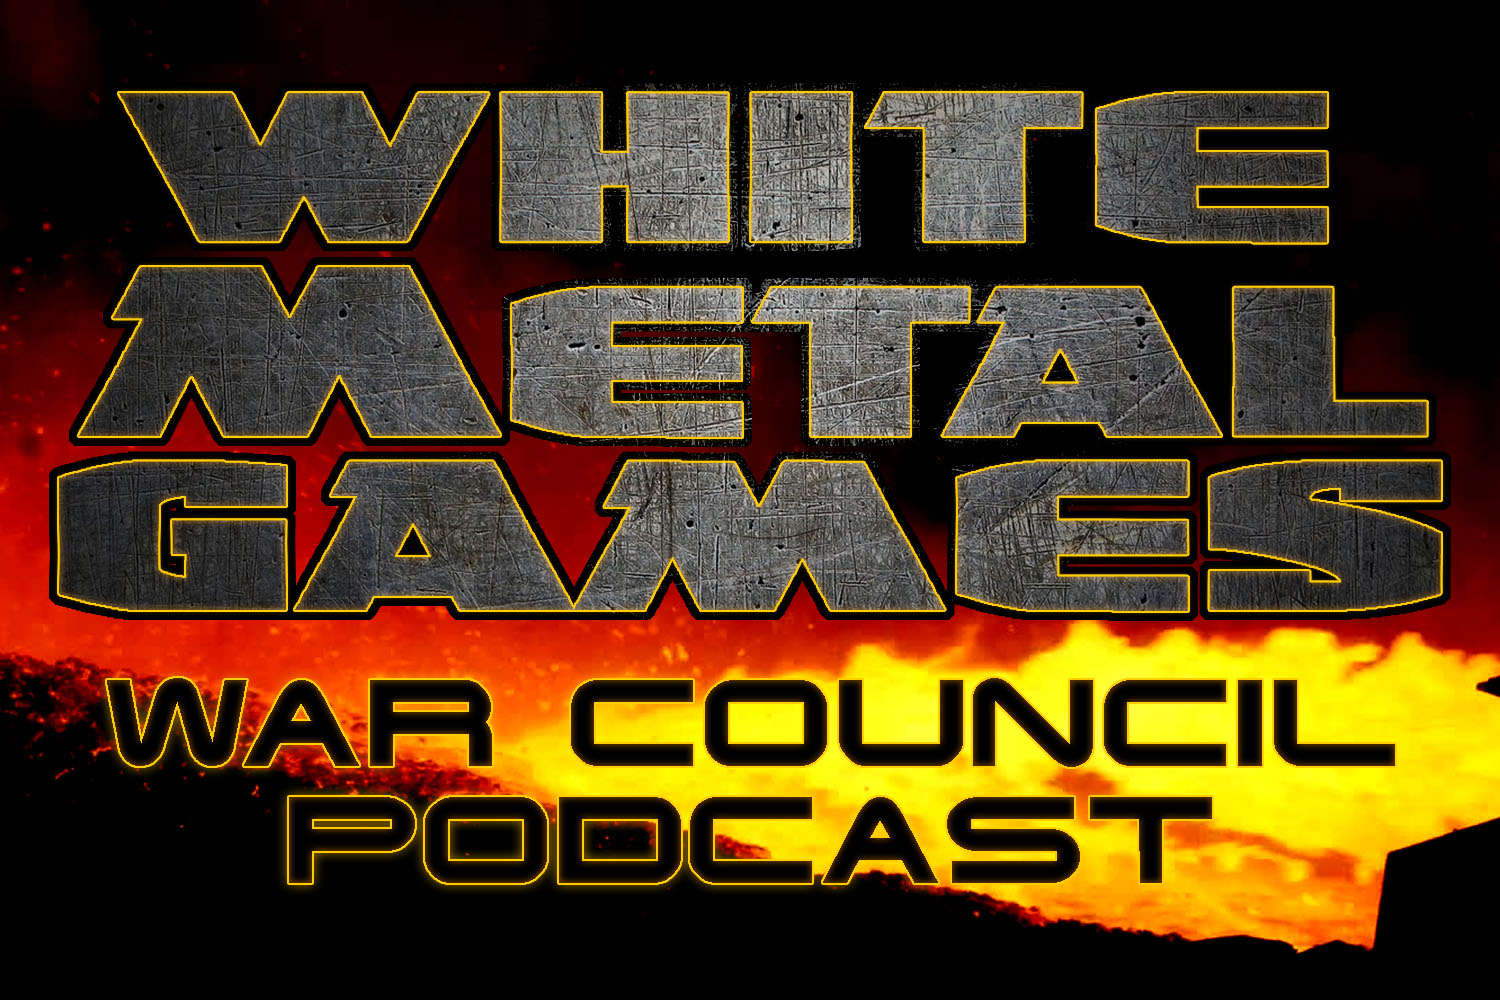 War Council Podcast - Newsletter Format